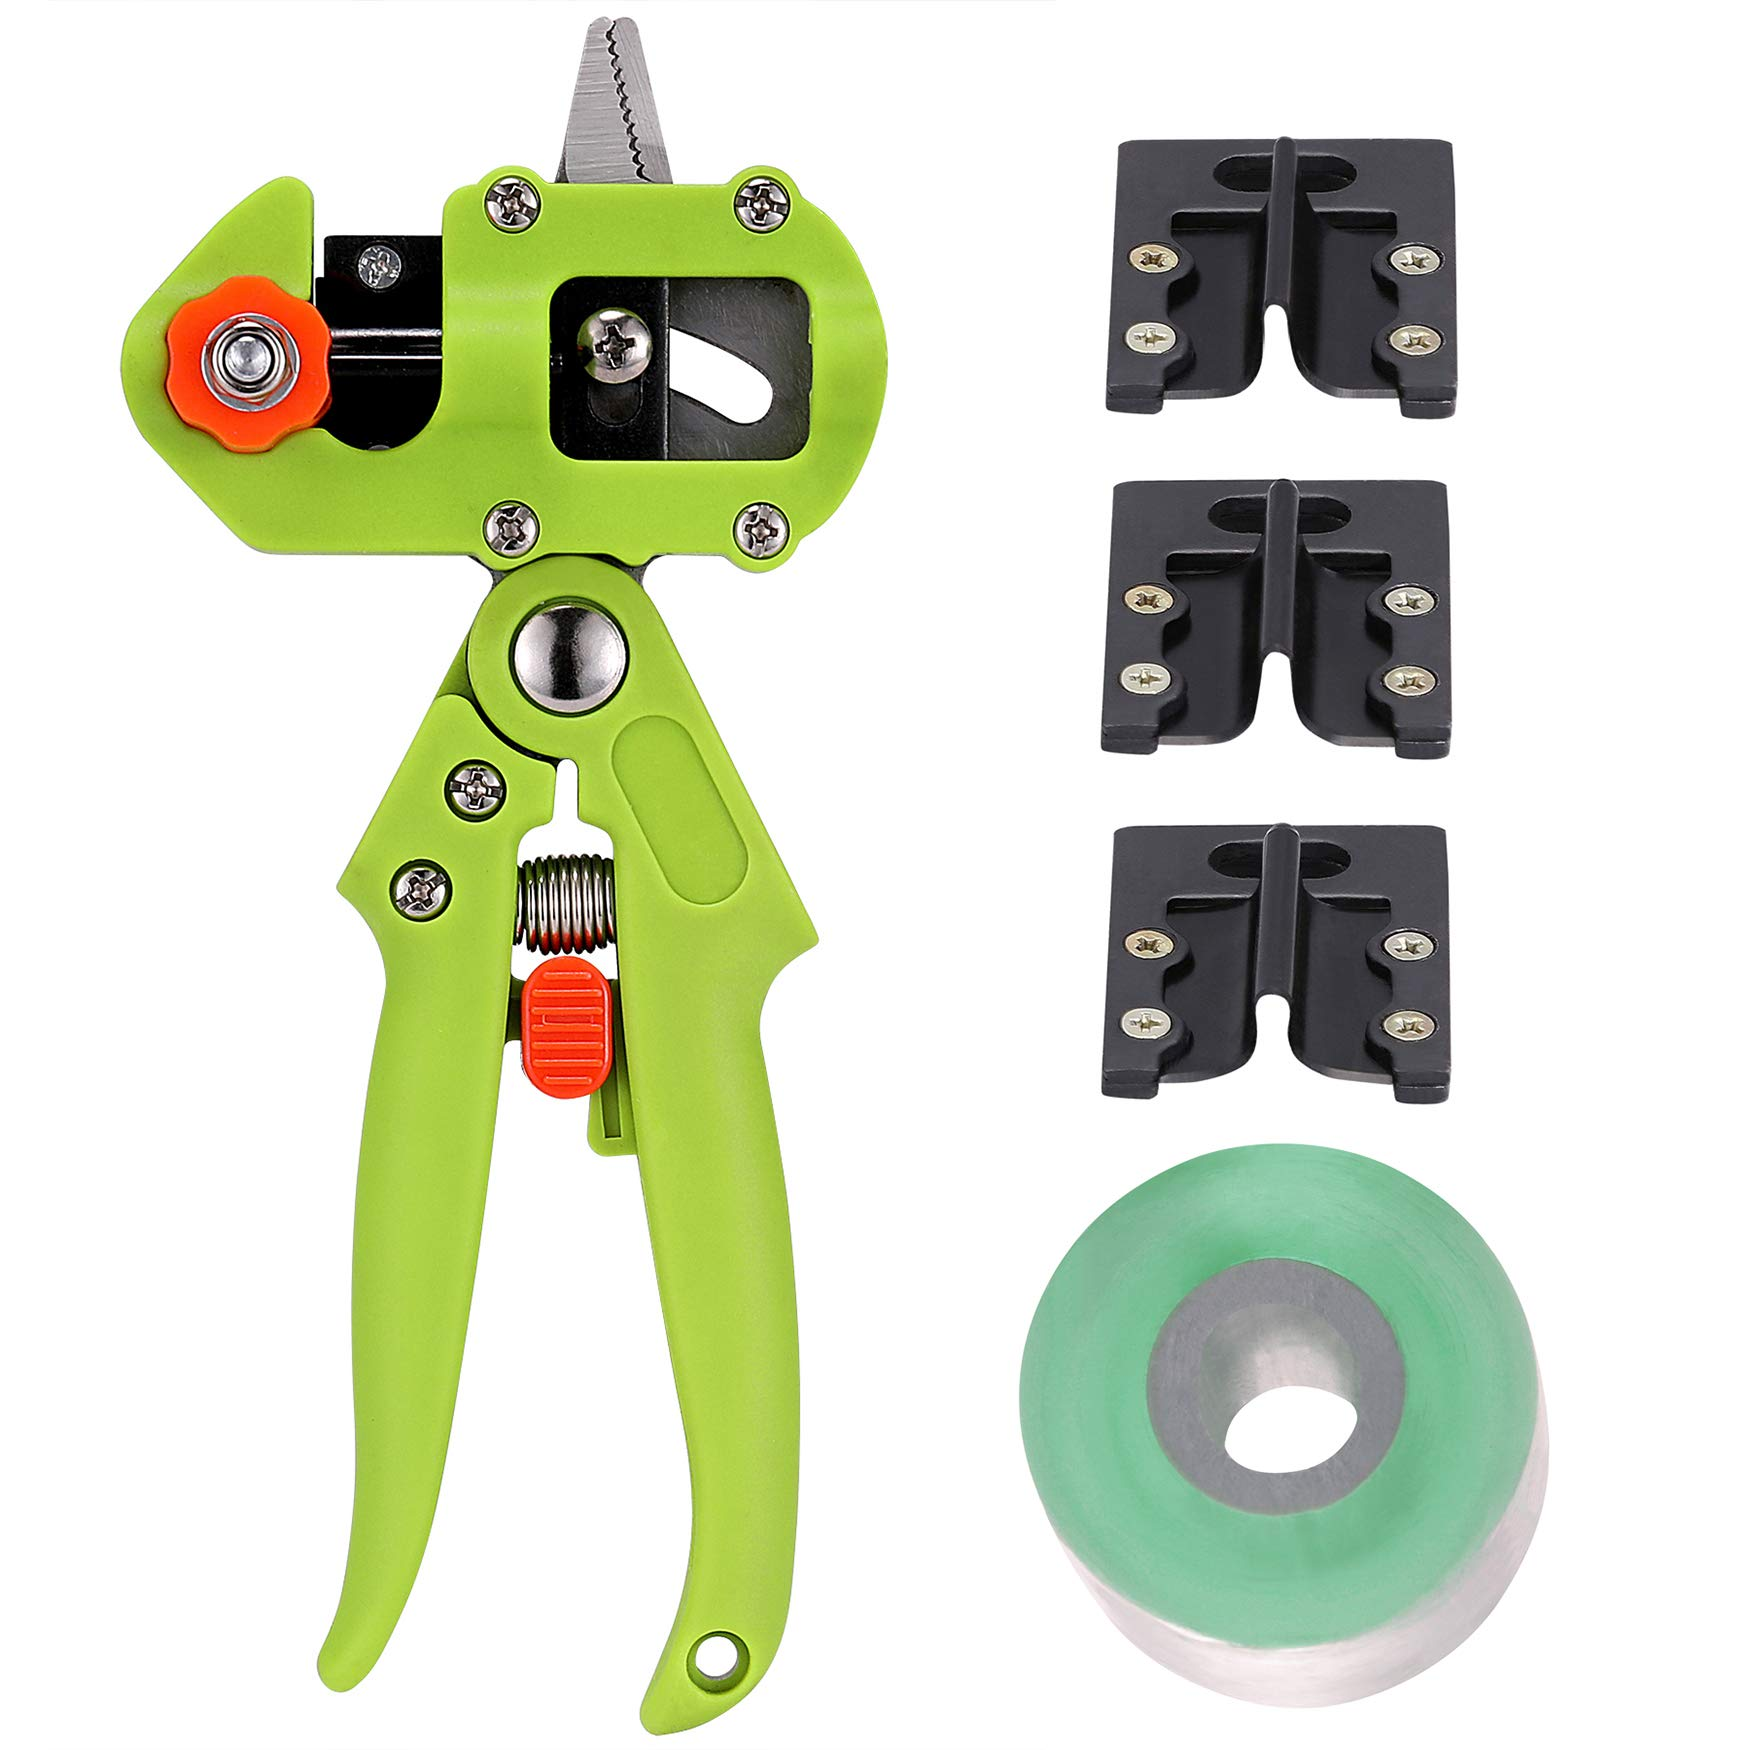 NAYE Grafting Tool for Fruit Trees with Grafting Tape and 3 Blades(U-Cut V-Cut Ω-Cut),Green by NAYE